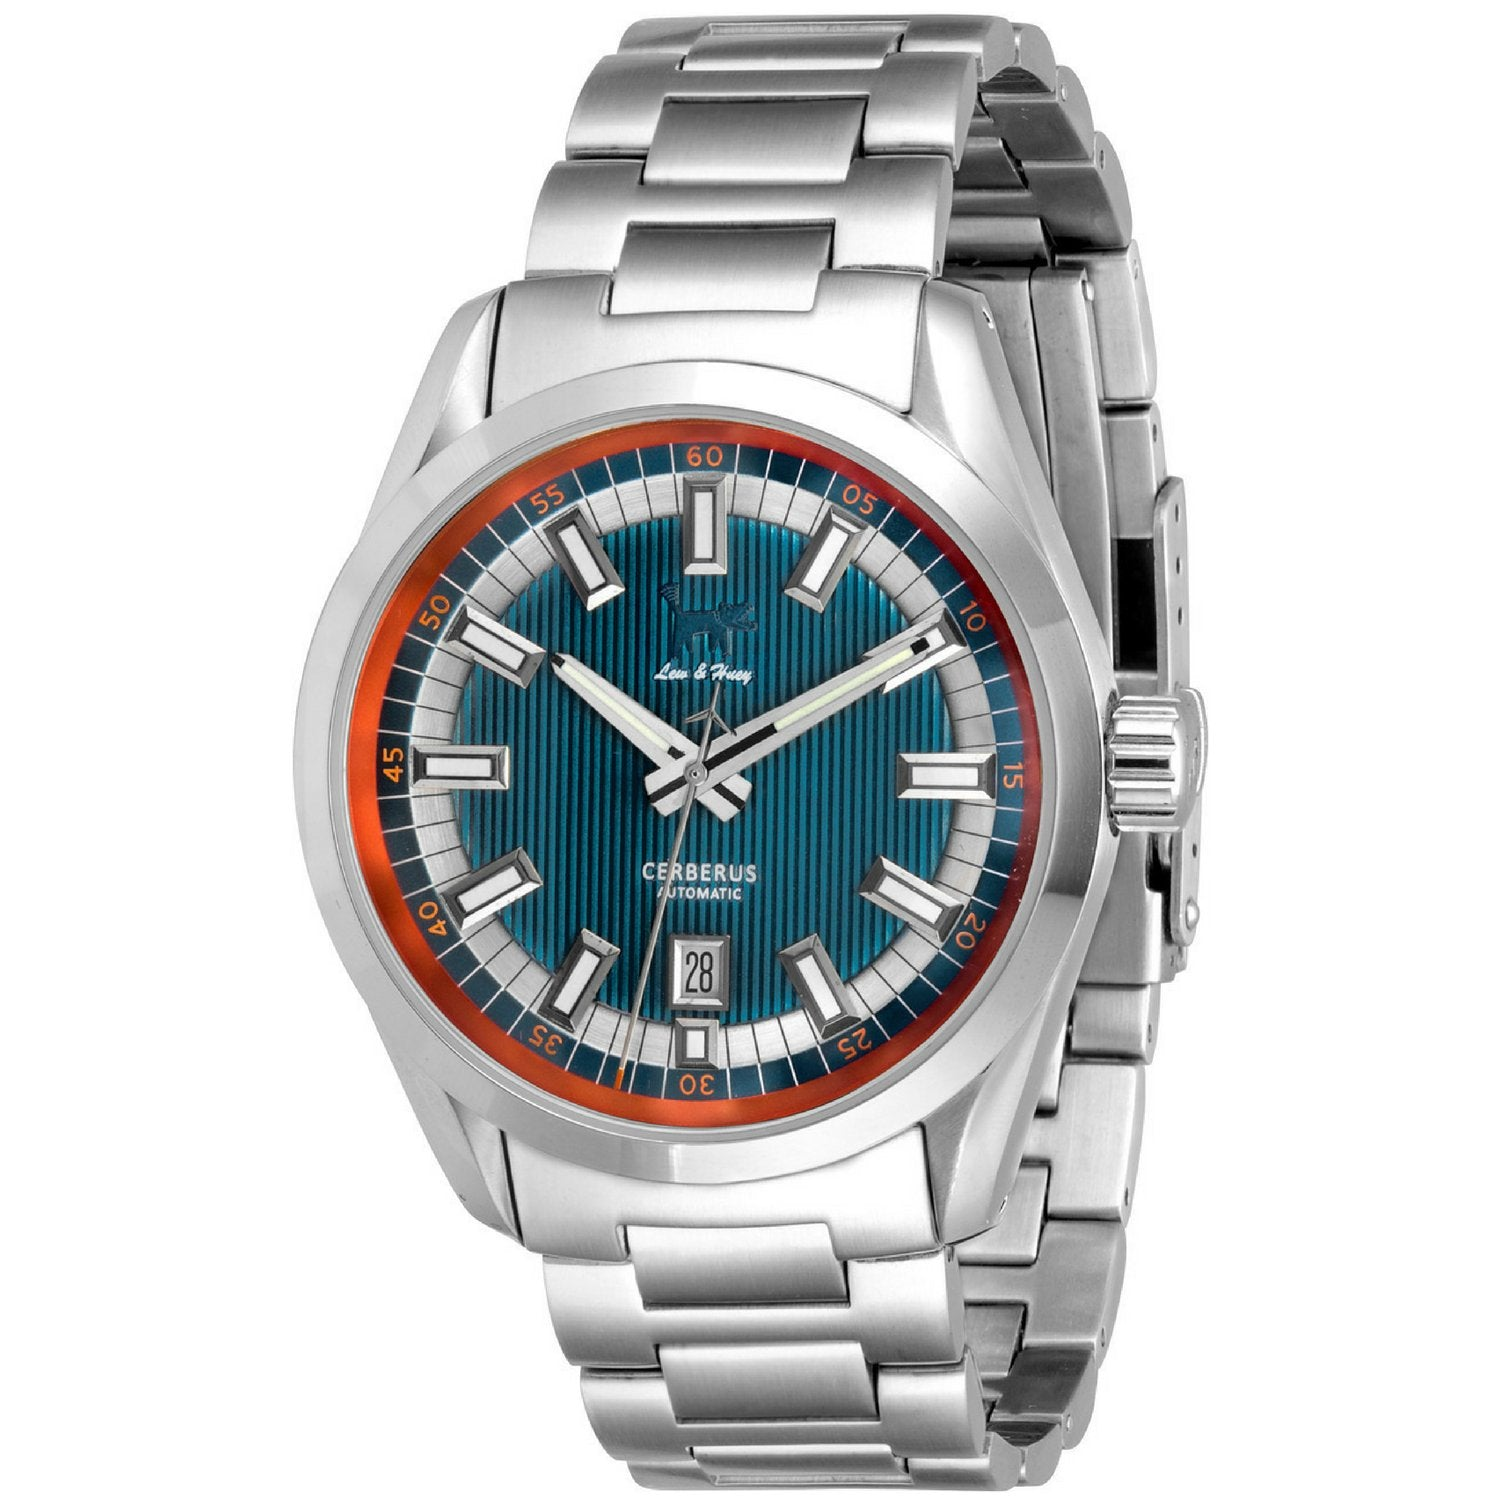 Lew and Huey Cerberus Automatic Watch (Blue & Orange)